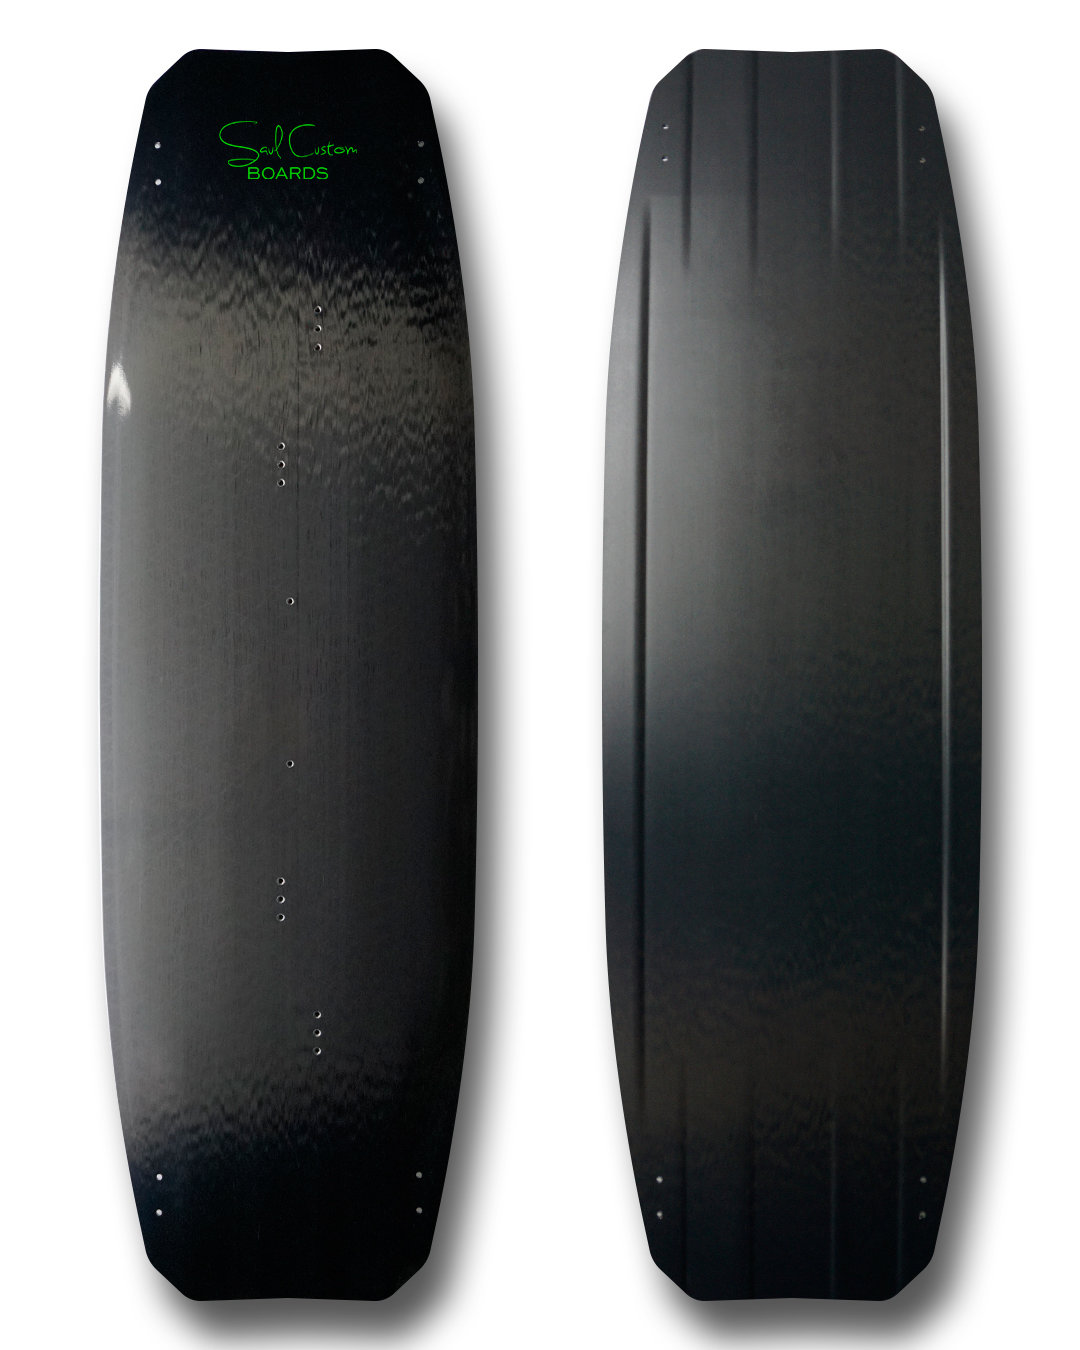 Pure 2.0 Carbon kiteboard 00026